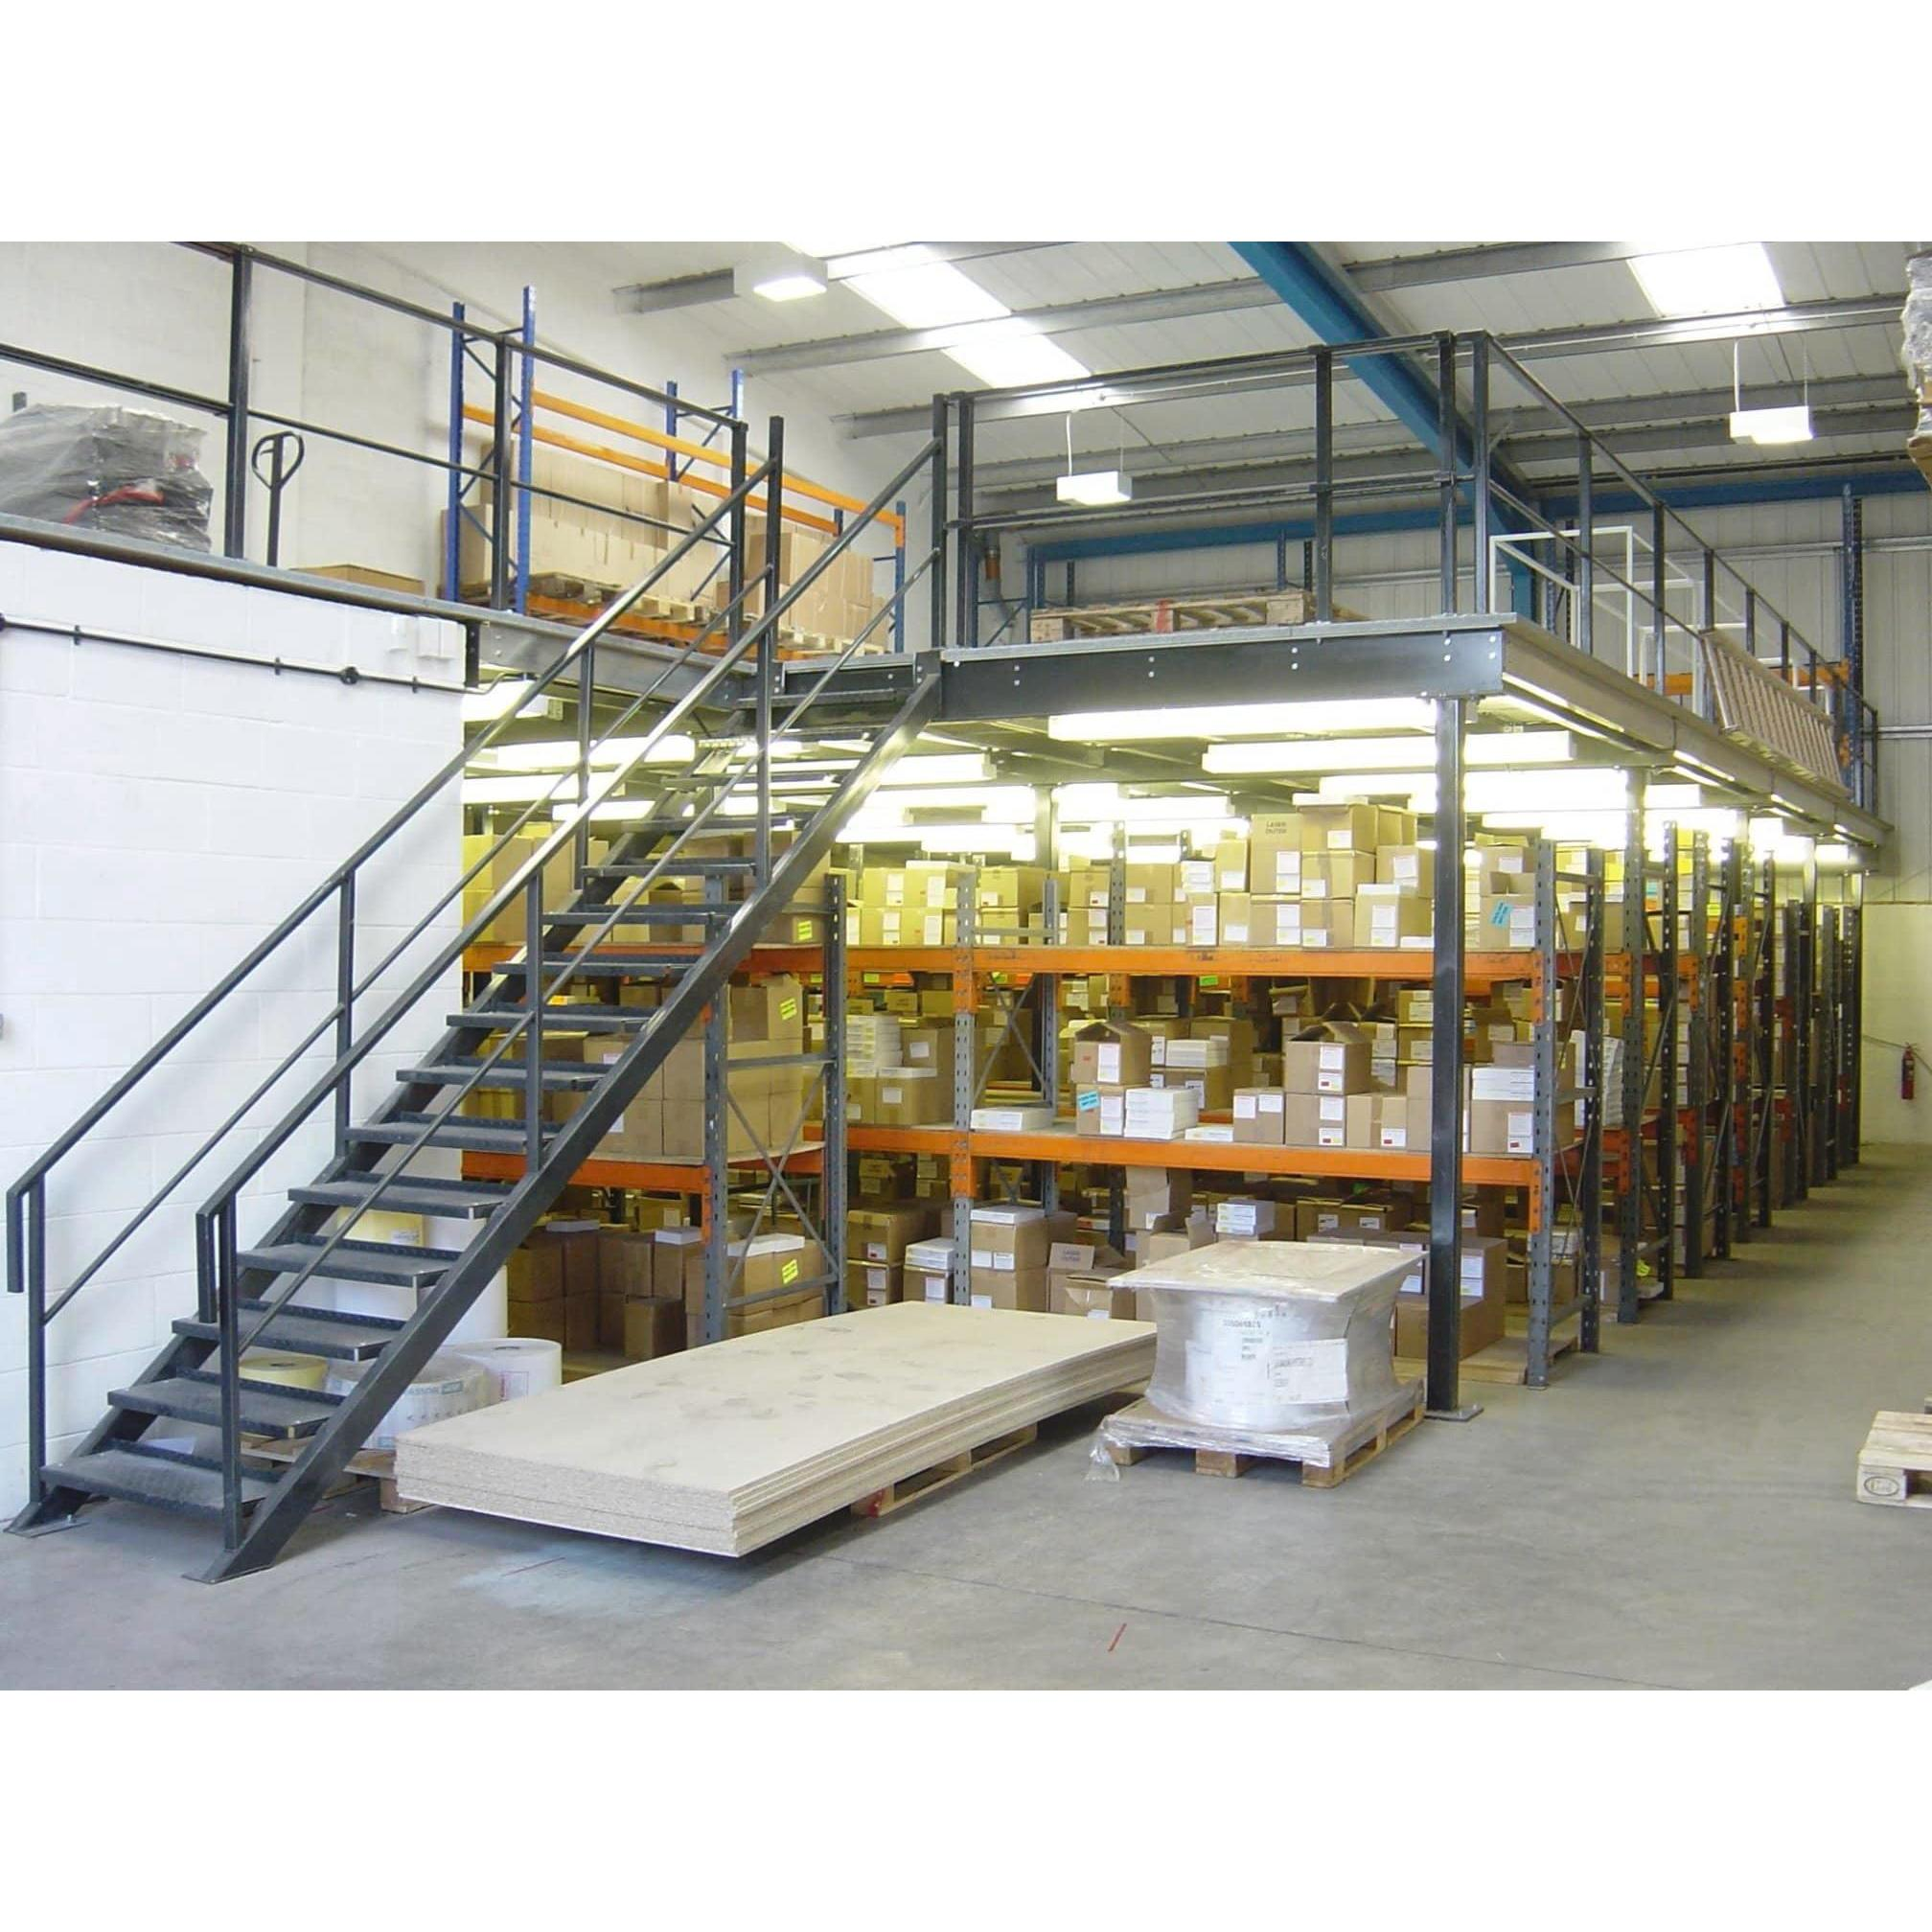 M P C Systems Ltd - Worcester, Worcestershire WR4 9ND - 01905 759635 | ShowMeLocal.com